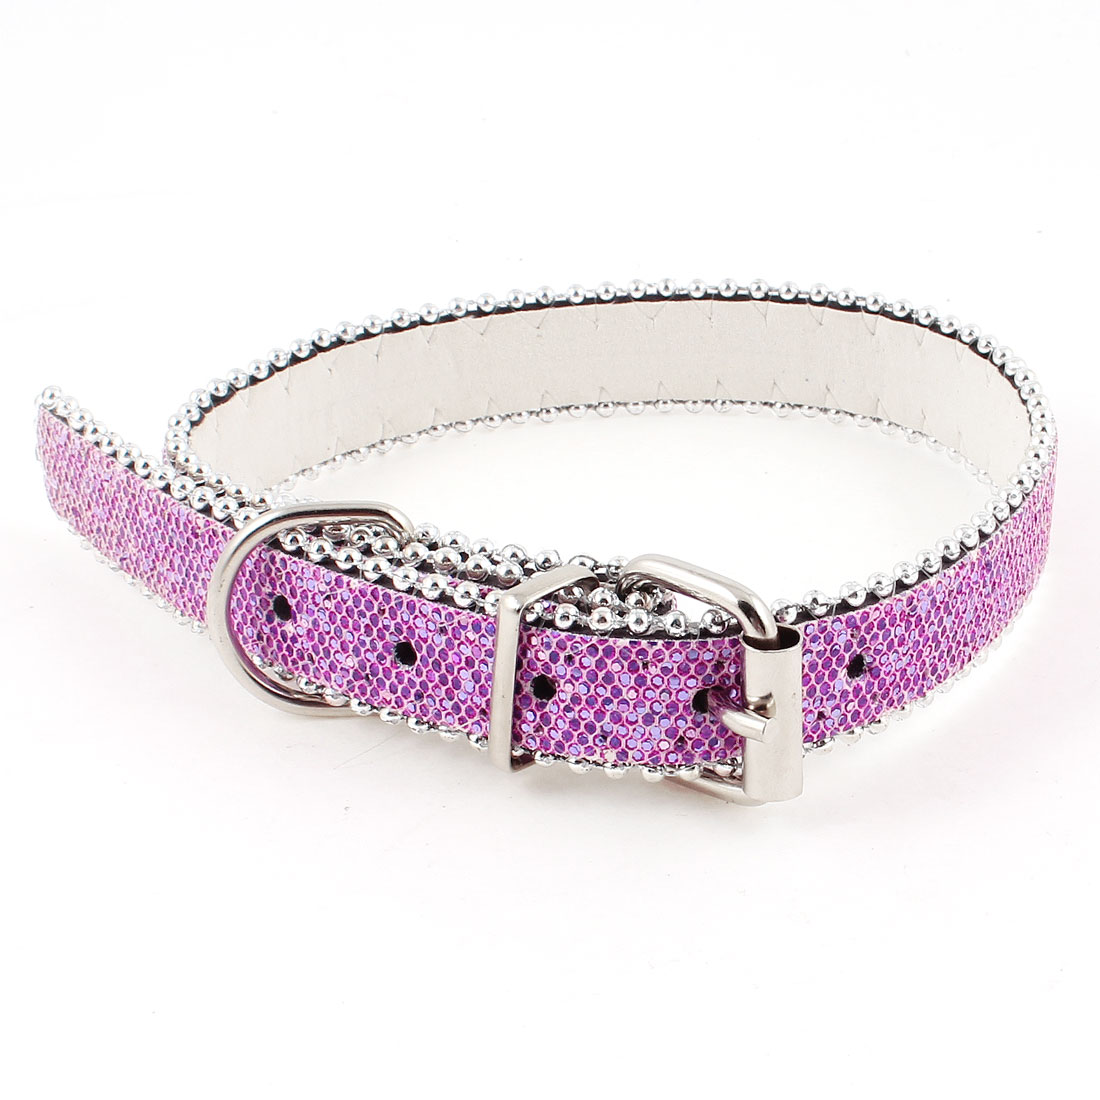 One Pin Buckle 5 Hole Glitter Powder Decor Belt Cat Dog Pets Neck Collar Fuchsia